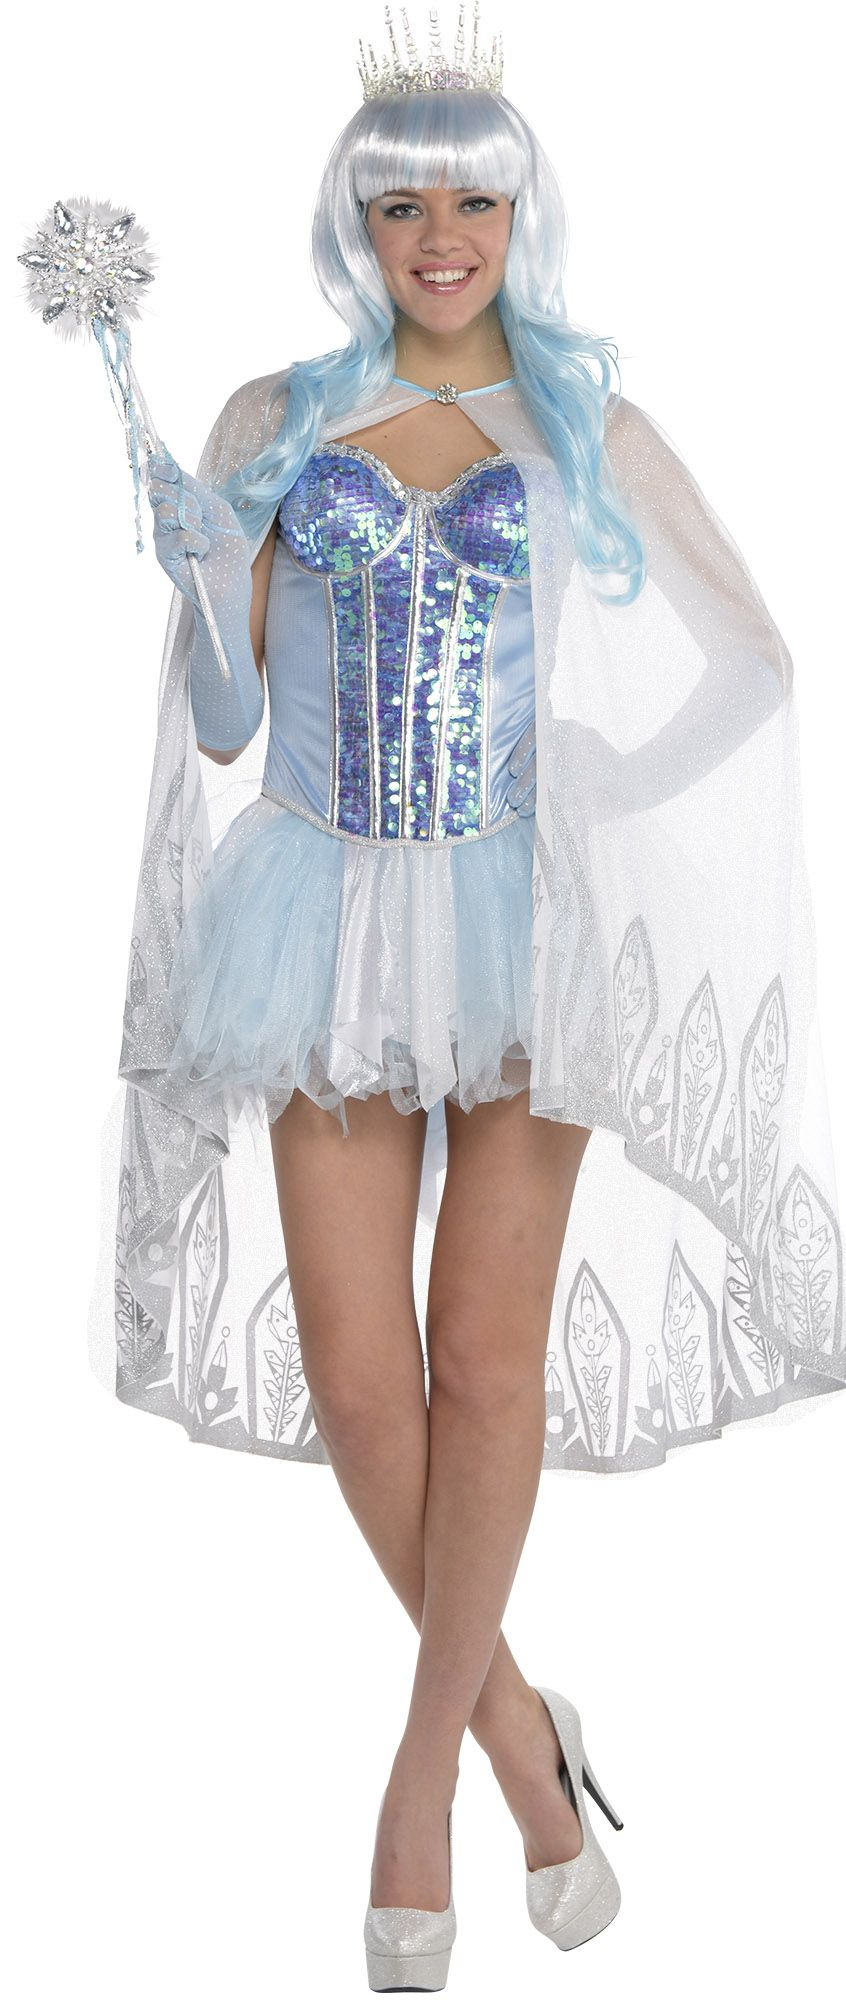 Create Your Own Look - Women's Ice Fairy #1